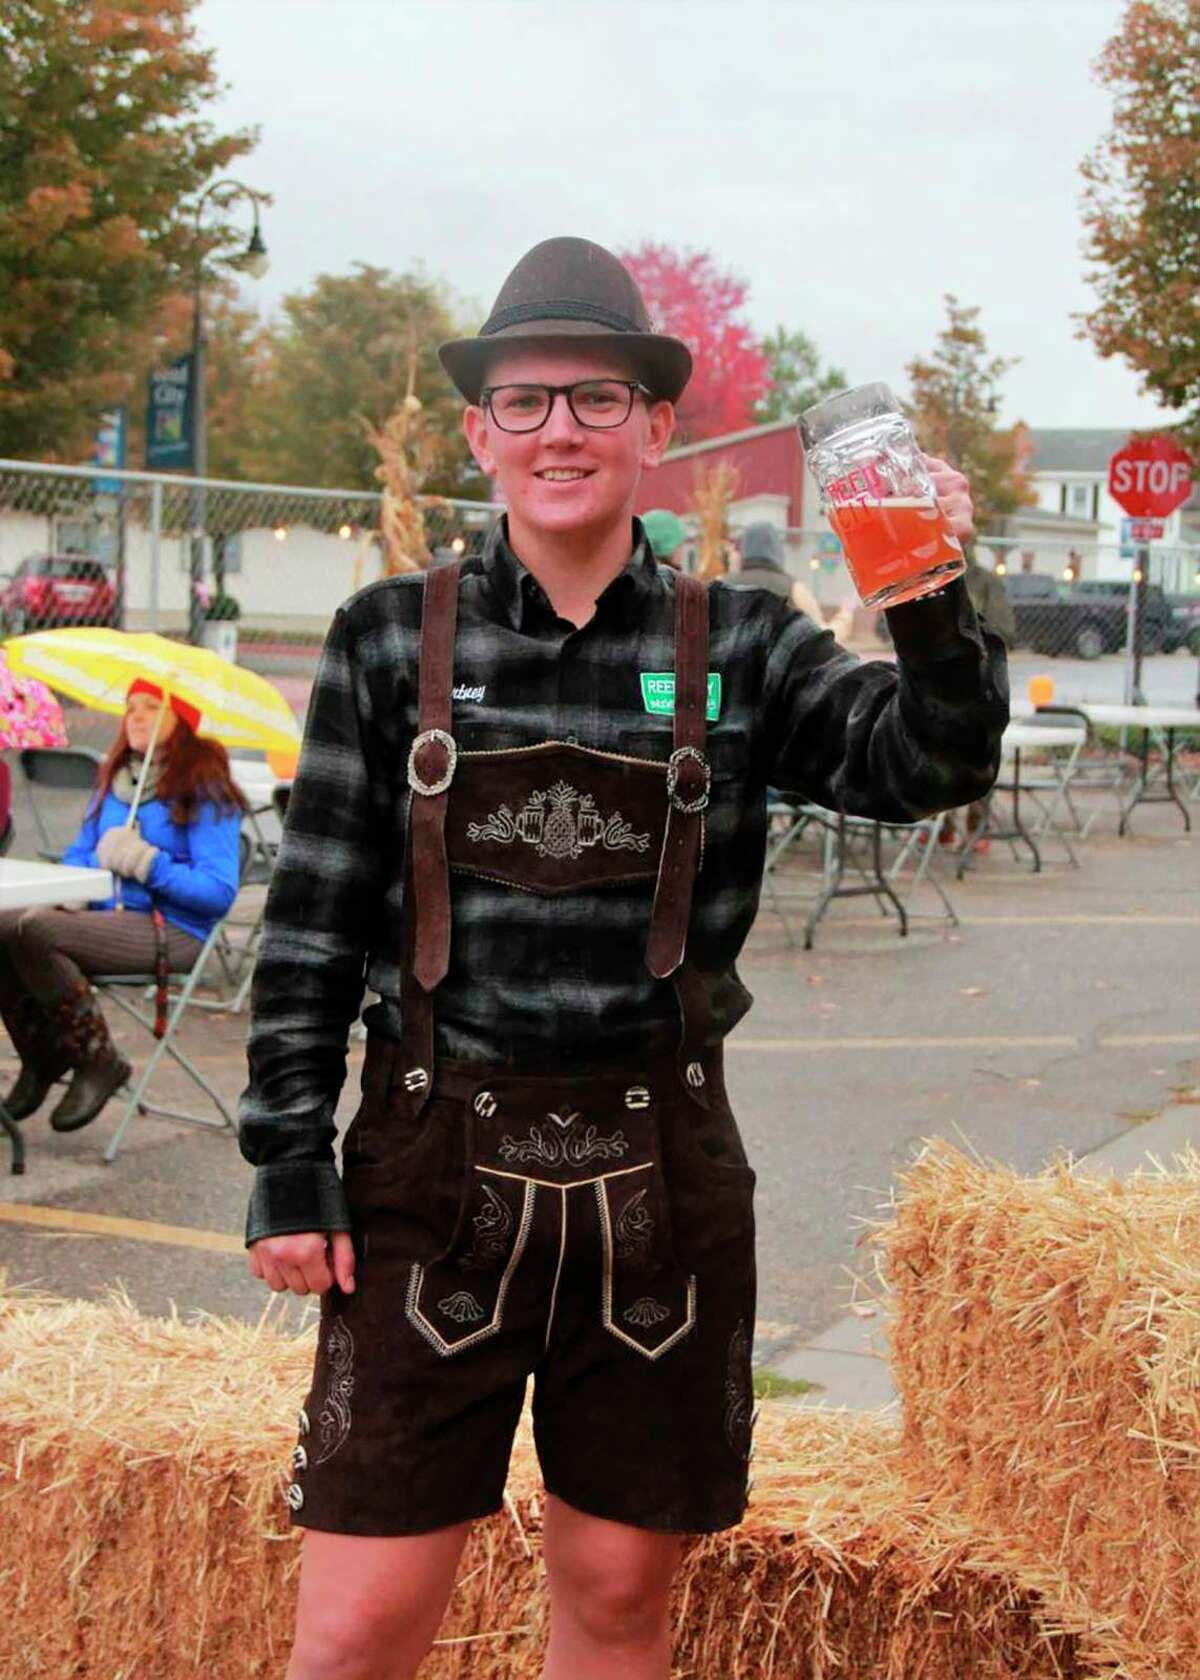 An attendeesof last year'sOctoberfest dresses up in German attire. The celebration returns this year on Sept. 25, and prizes will be awarded for best dressed patrons.(Pioneer file photo)